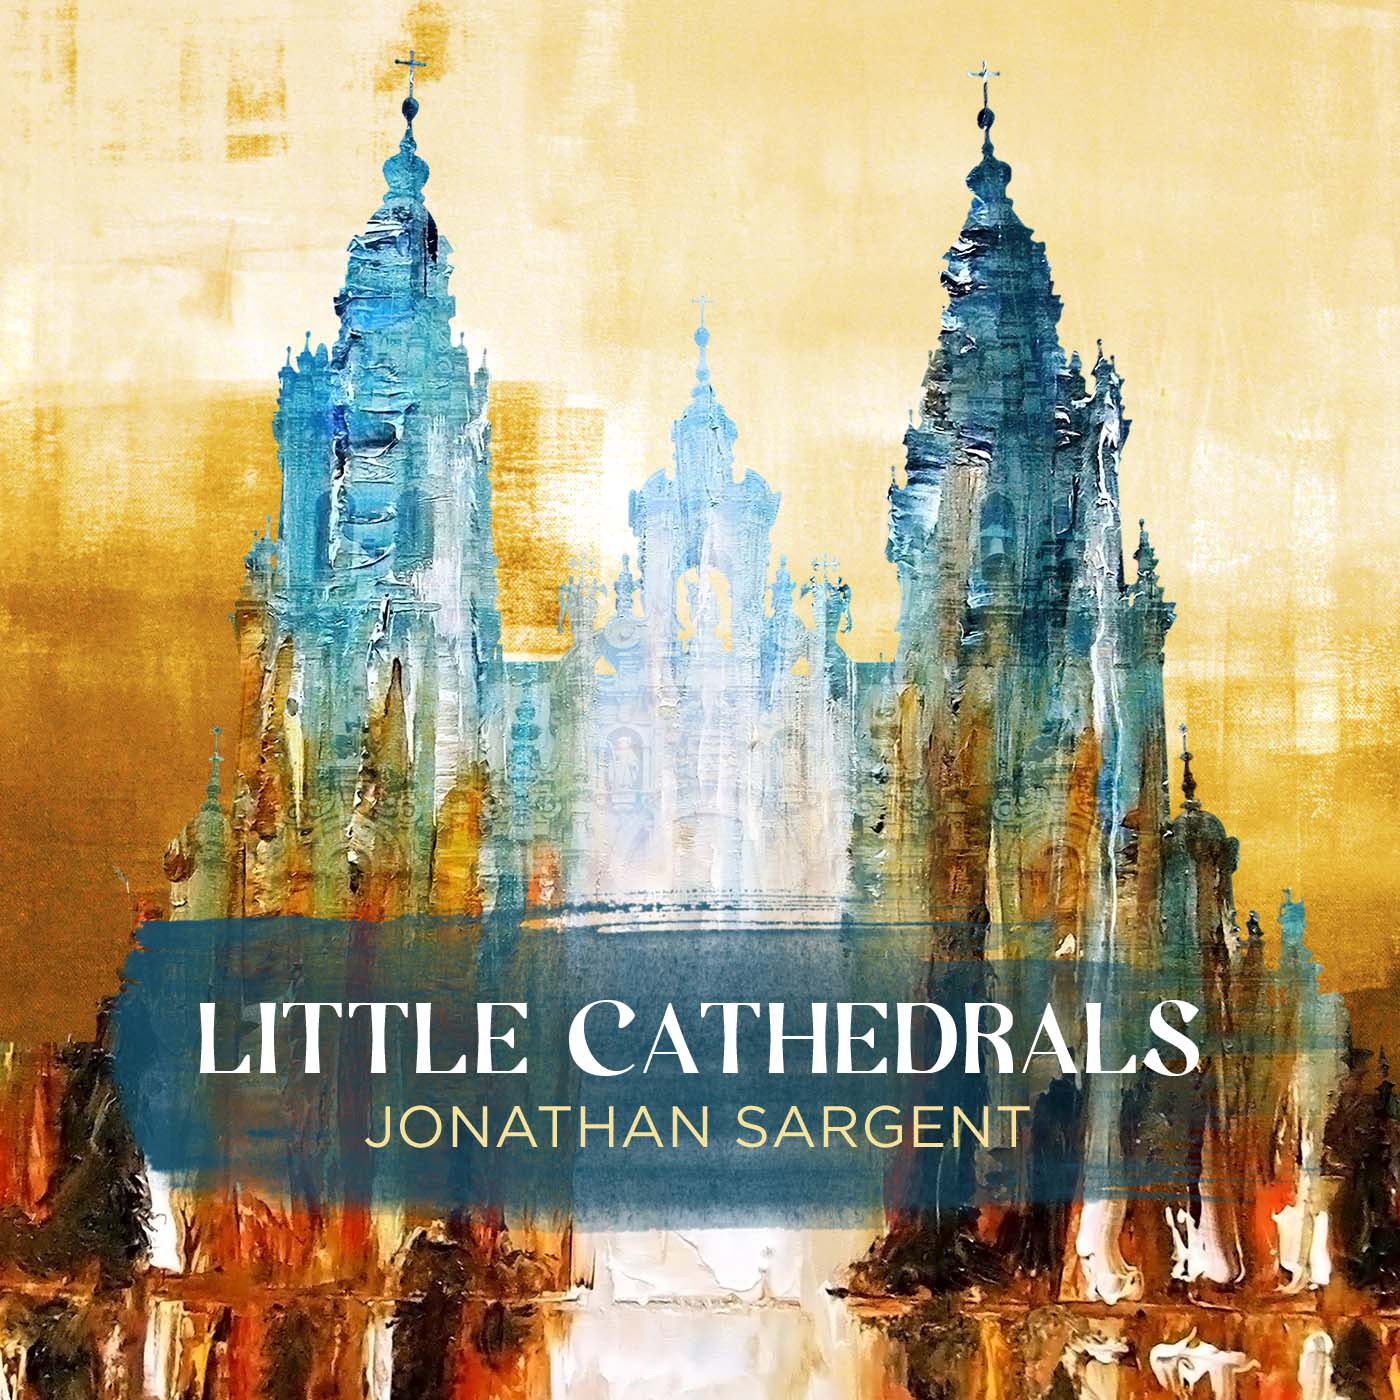 Little Cathedrals